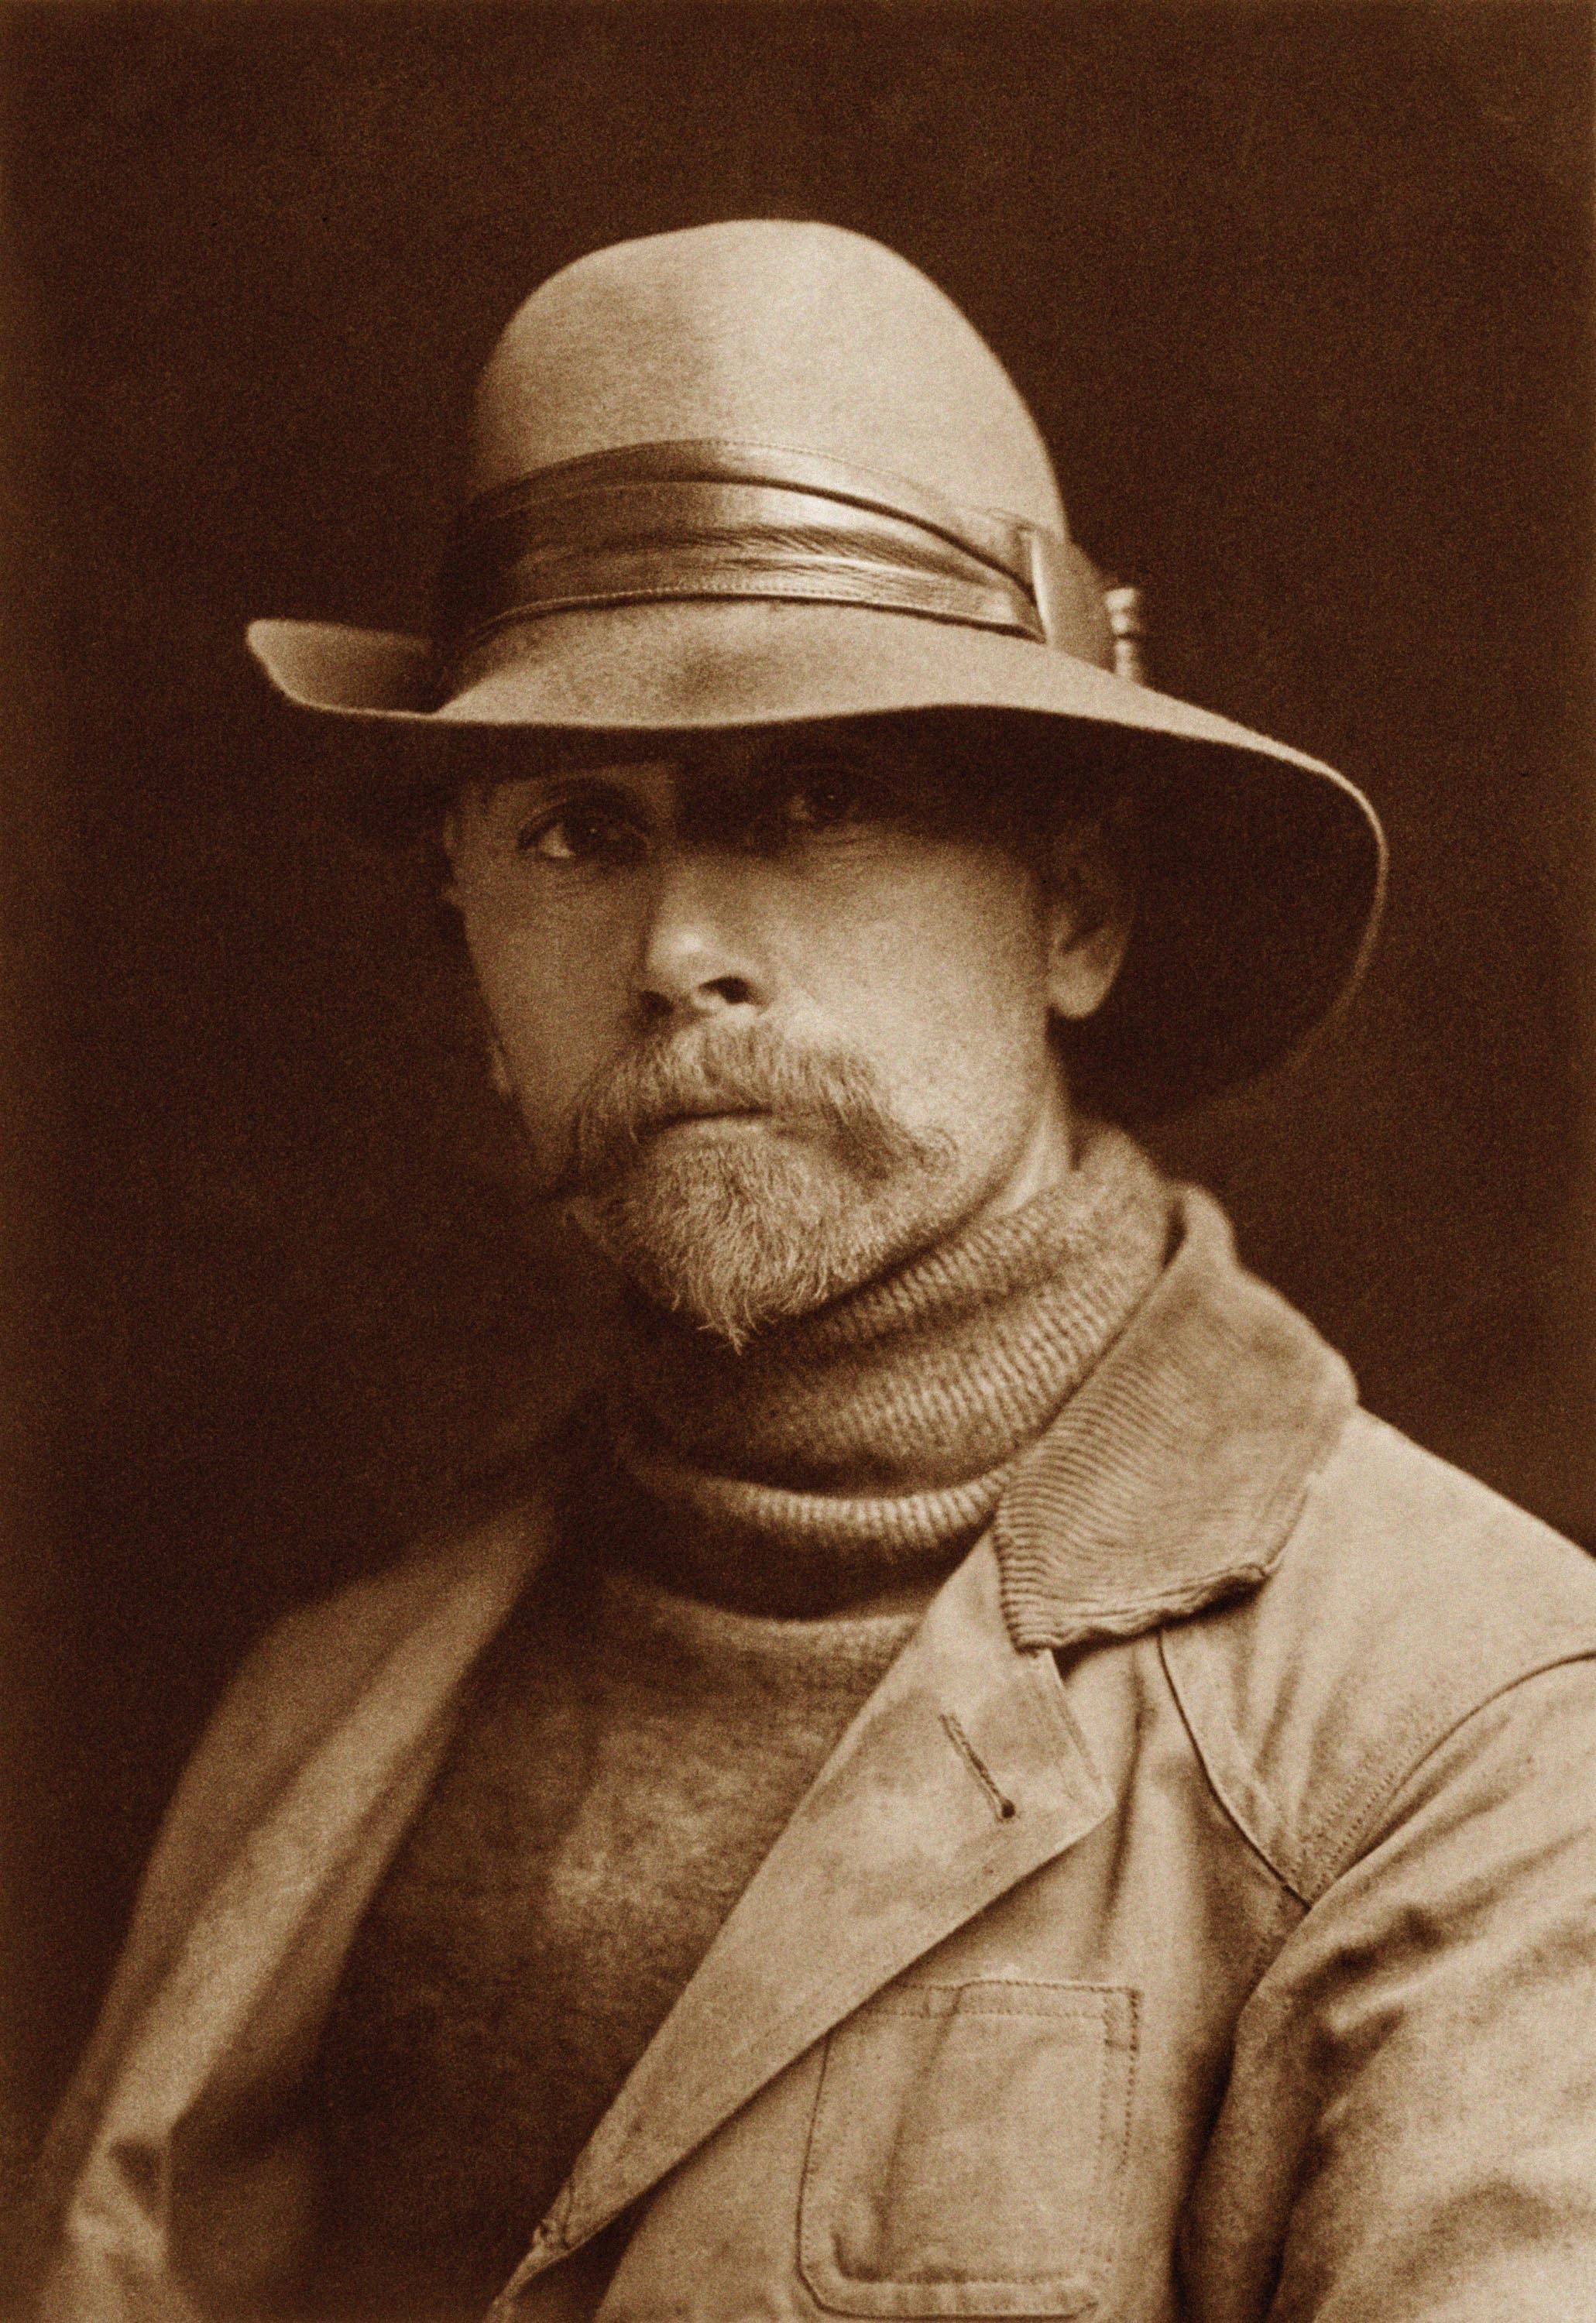 Image of Edward Sheriff Curtis from Wikidata